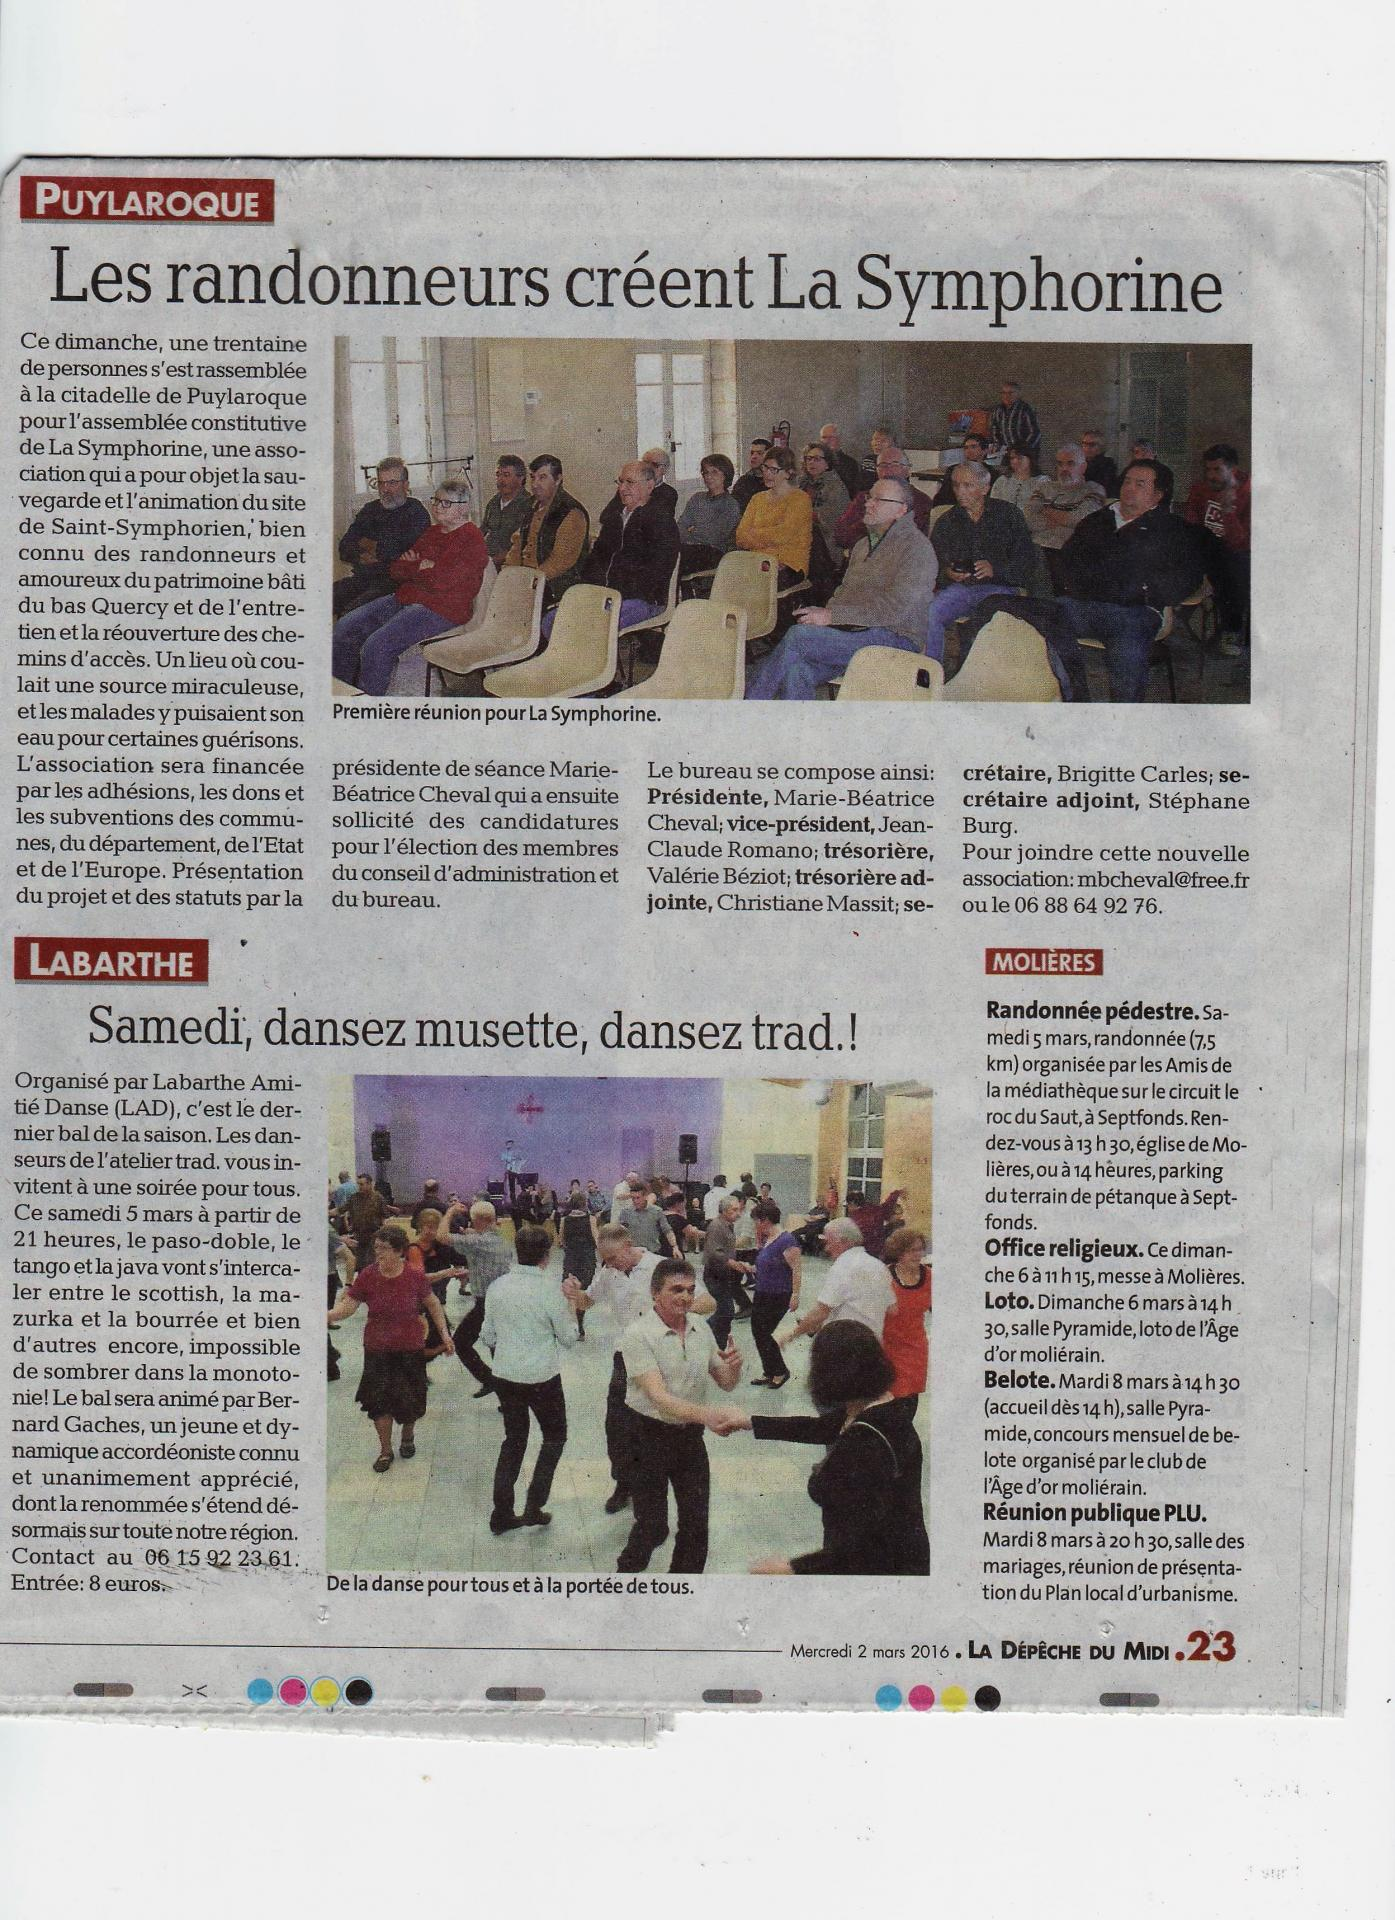 2016 04 02 article la depeche 001 2